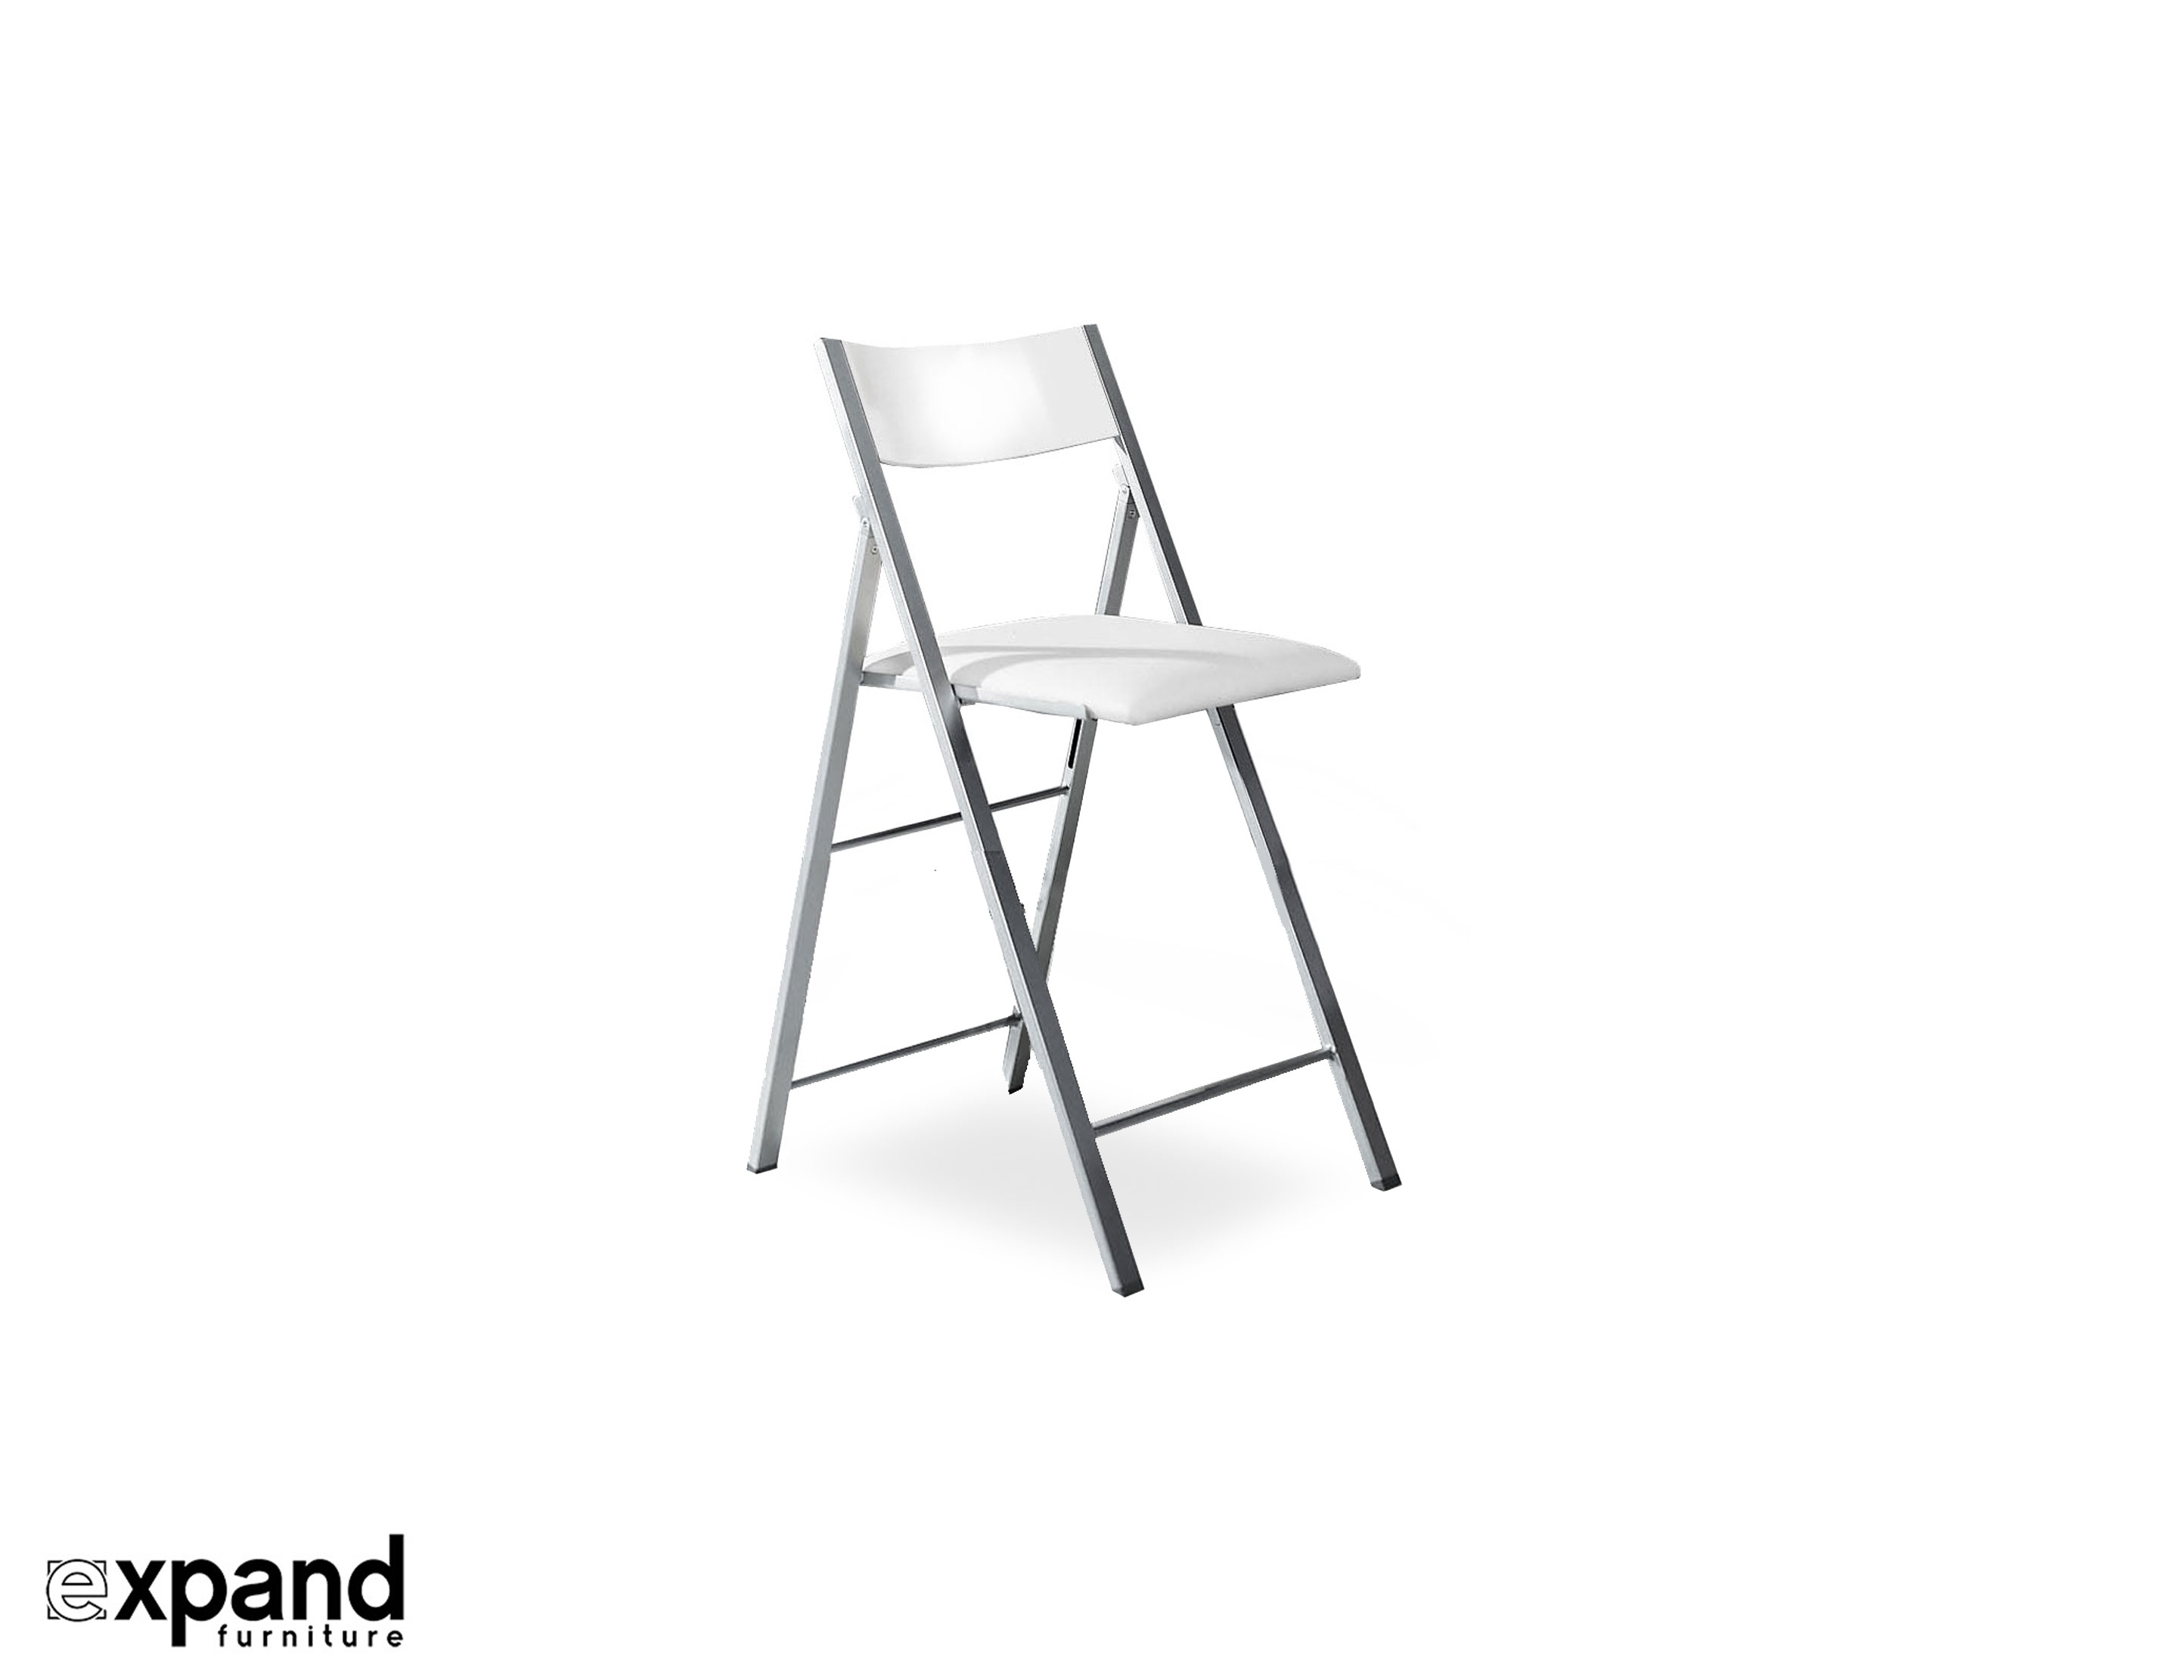 tall folding chairs makeup for vanity nano counter height chair set of 4 expand